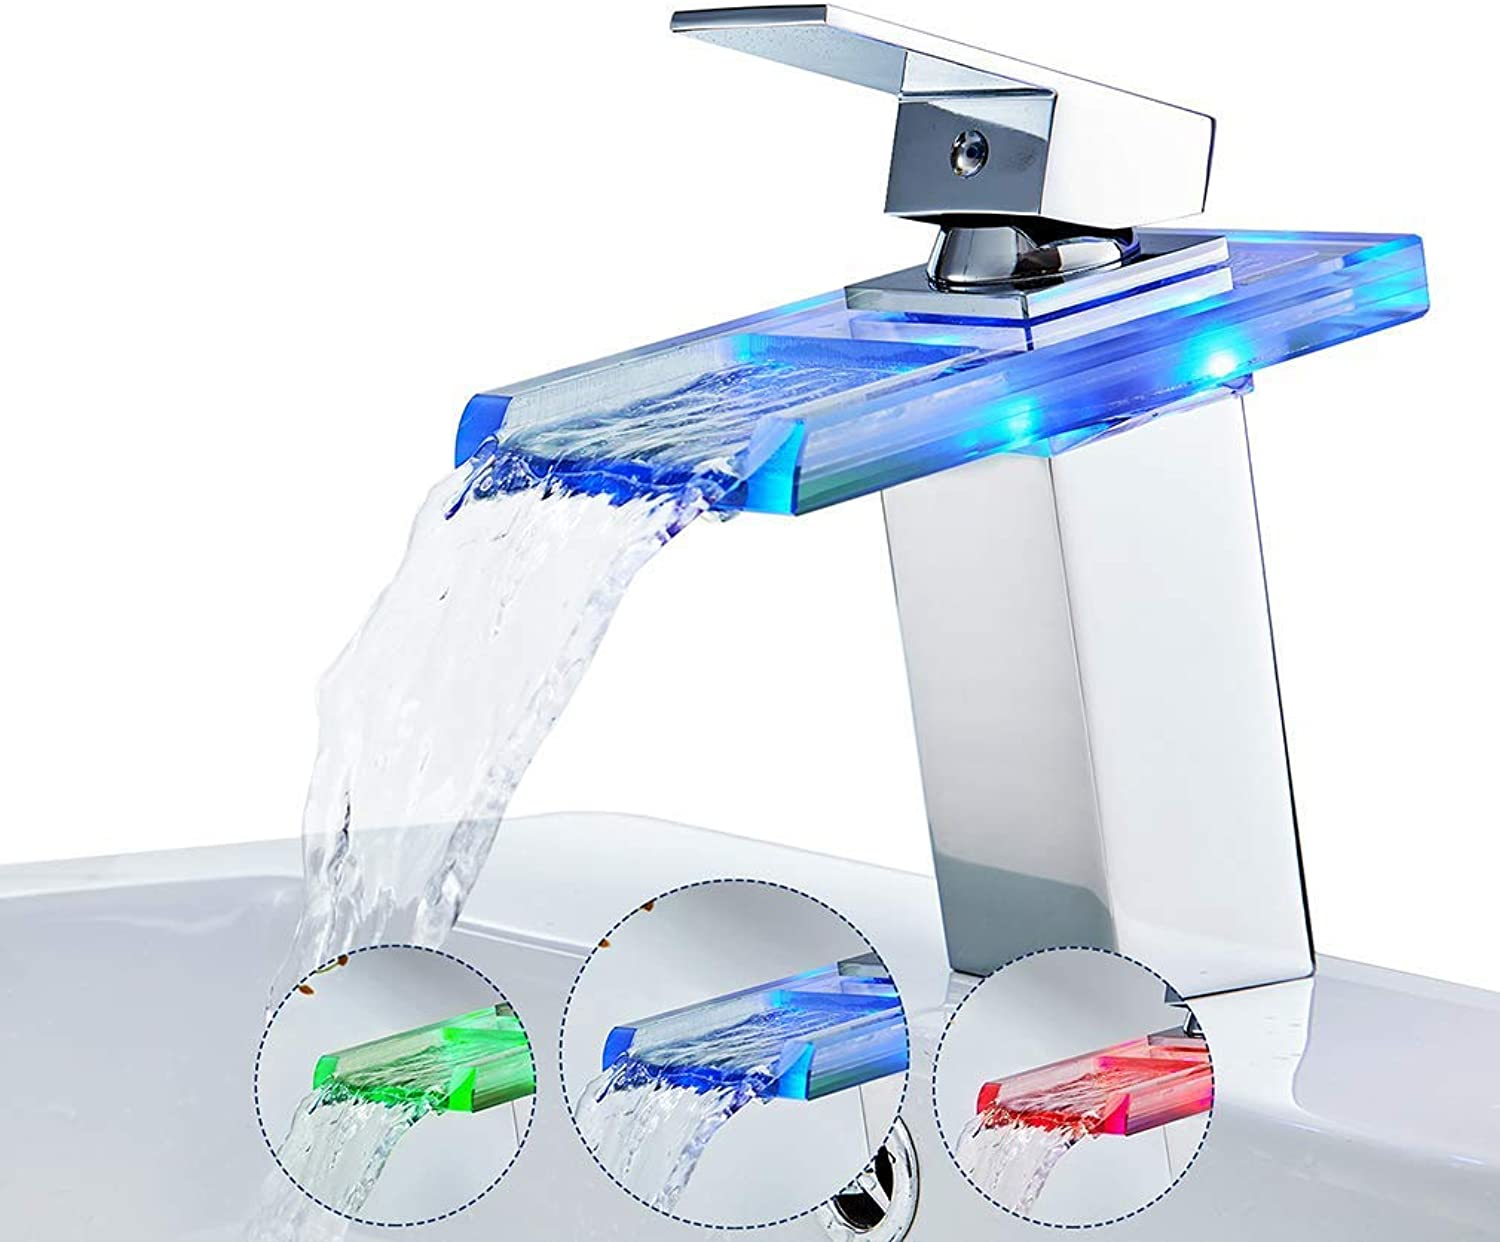 Jueven Bathroom LED Faucet Waterfall Basin Glass Faucet Single Hand Single Hole Mixer Tap Sink Faucet 3 colors Changing,Chrome